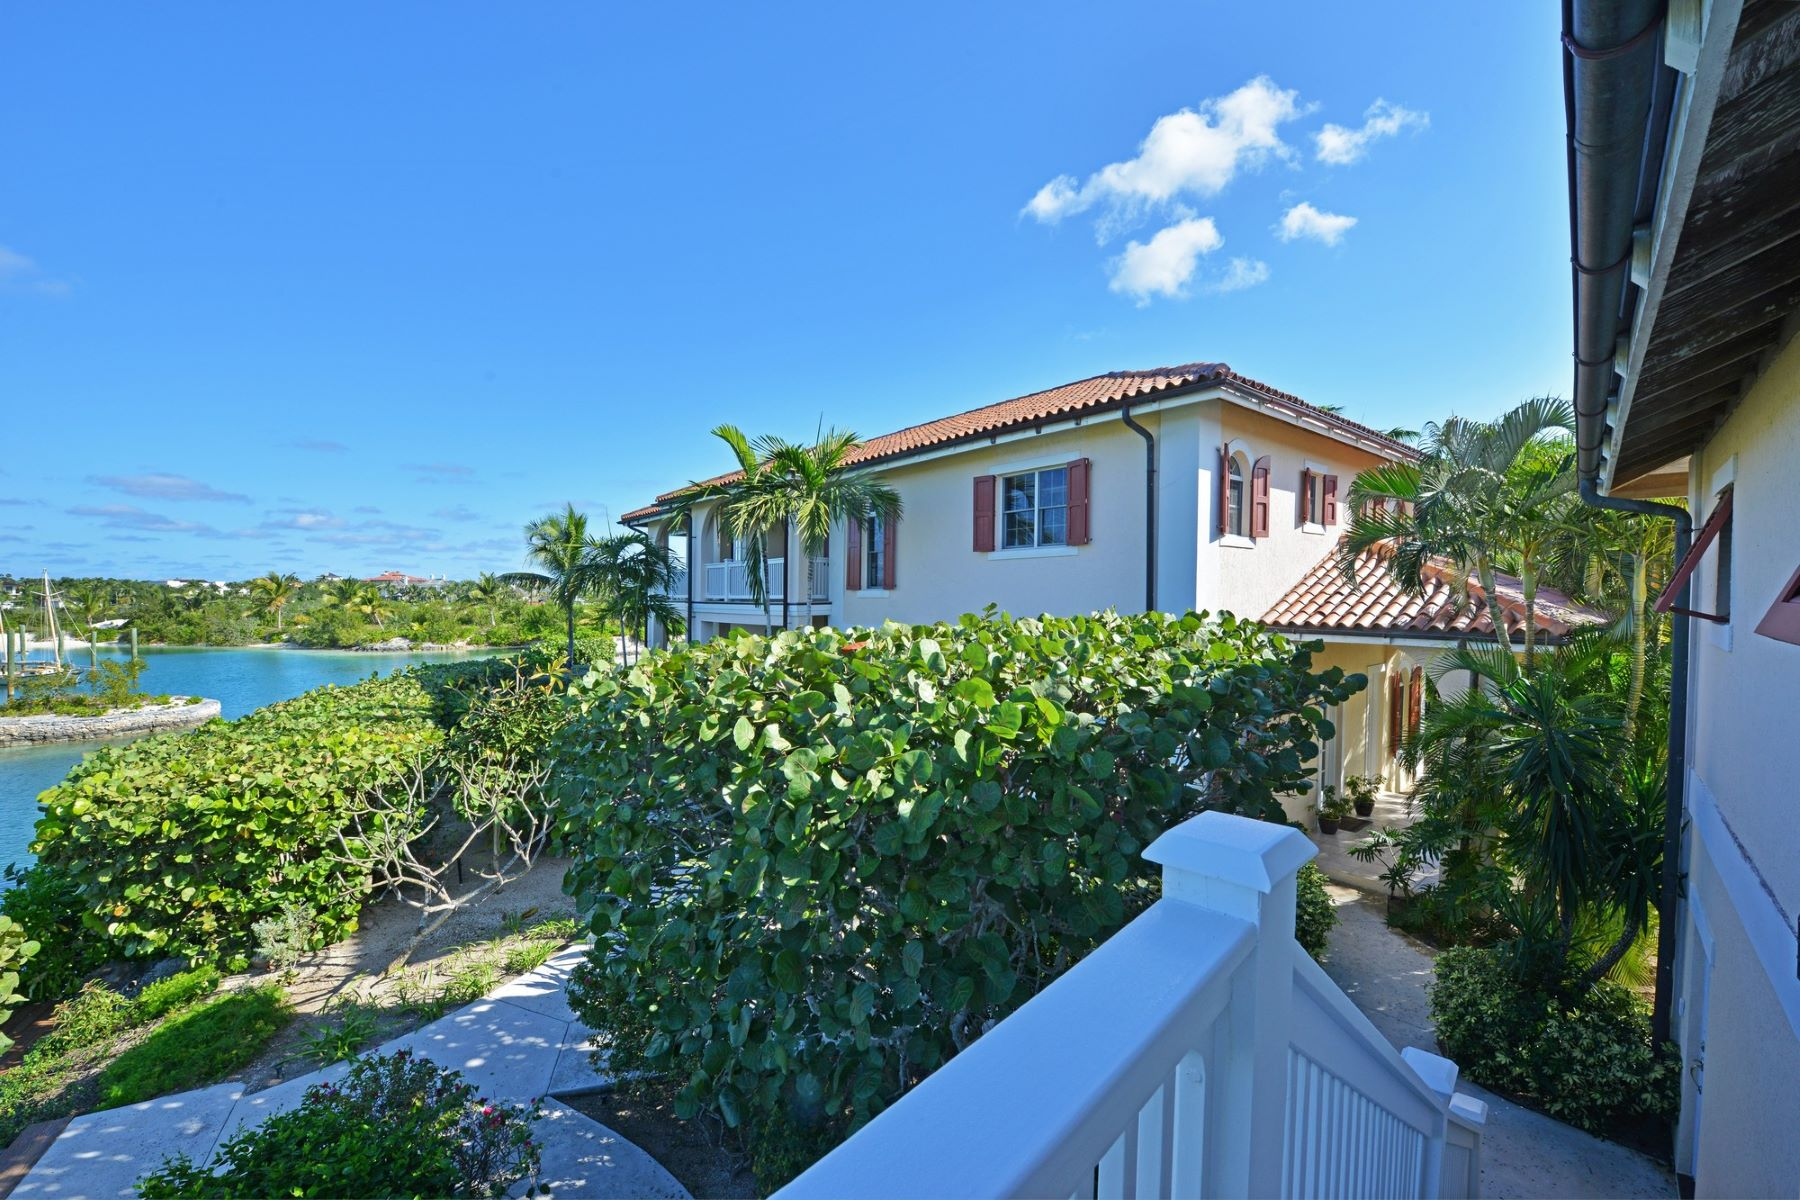 Single Family Home for Sale at 2 Arbor Island Islands At Old Fort Bay, Old Fort Bay, Nassau And Paradise Island Bahamas